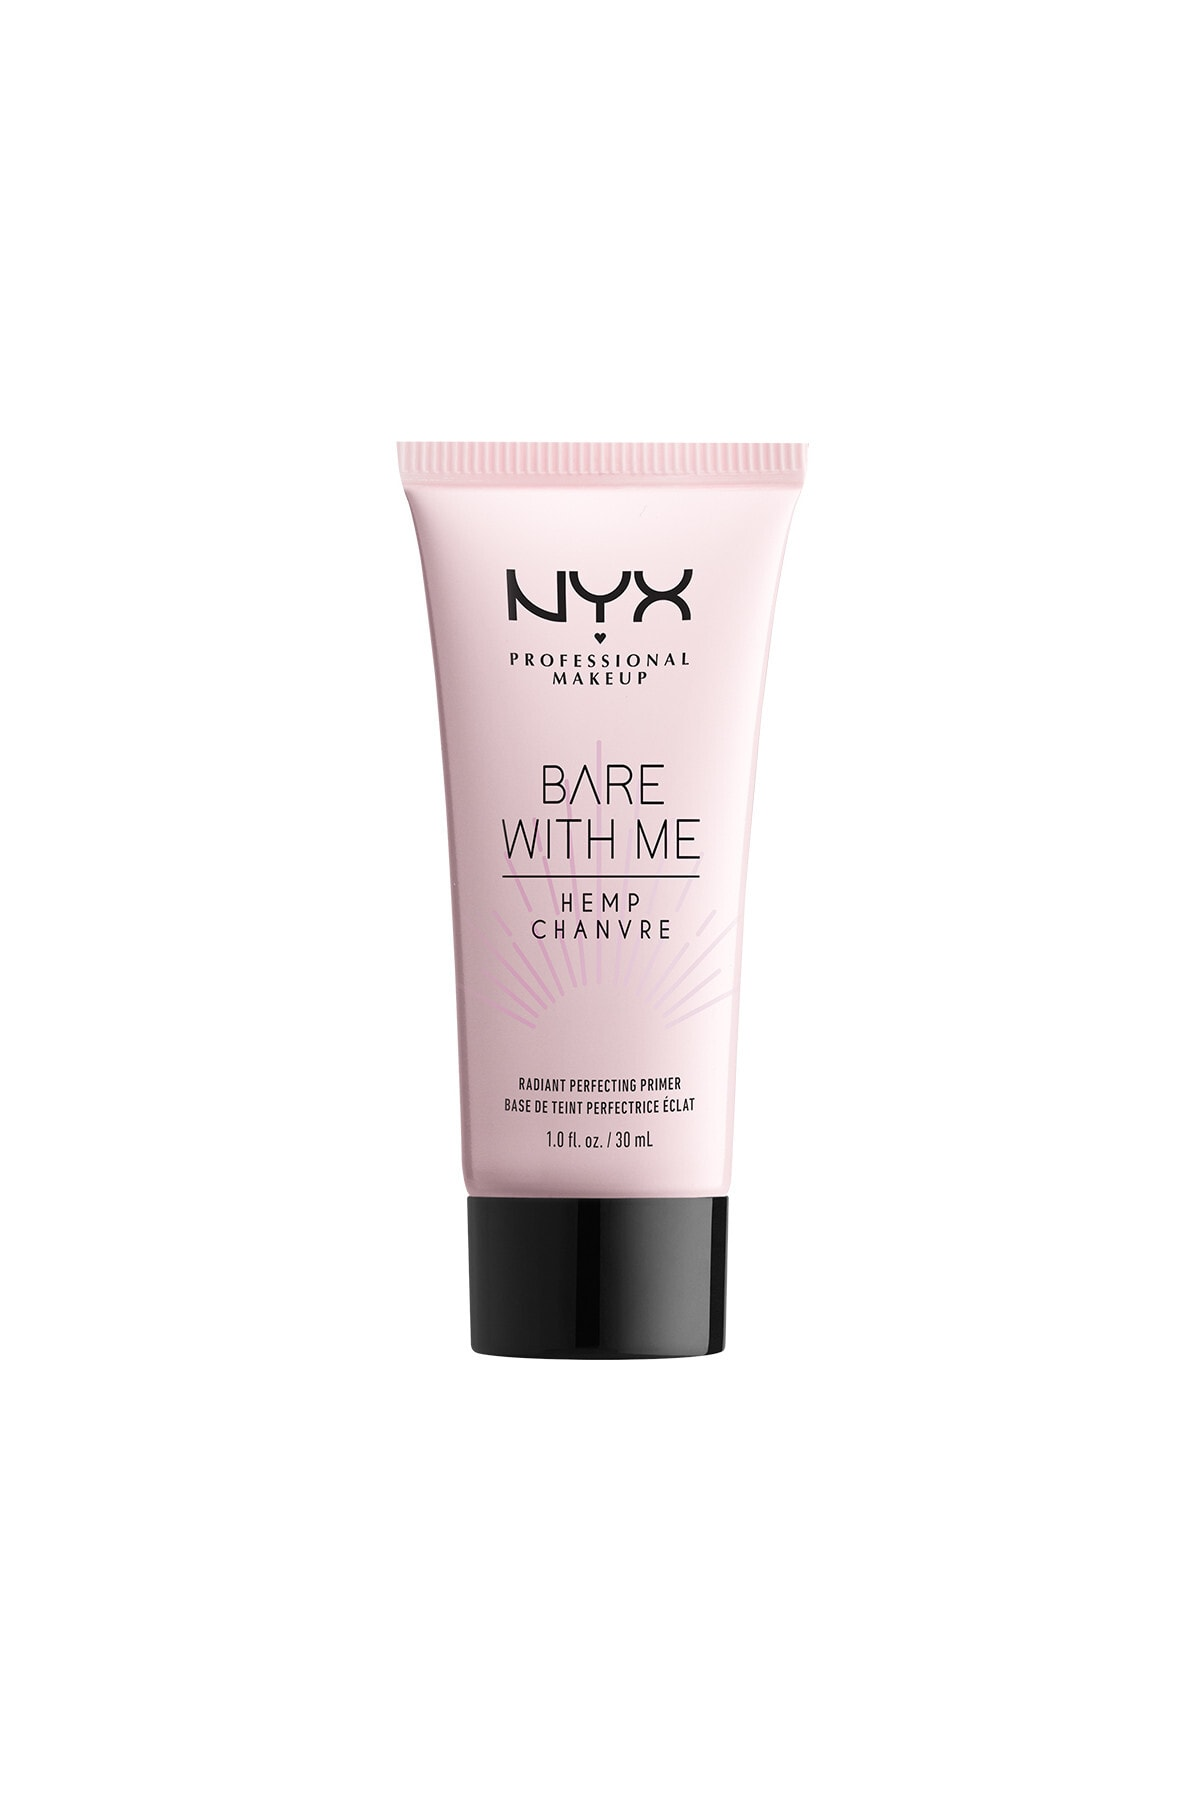 NYX Professional Makeup Bare With Me Sativa Radiant Perfecting Primer 800897191337 1